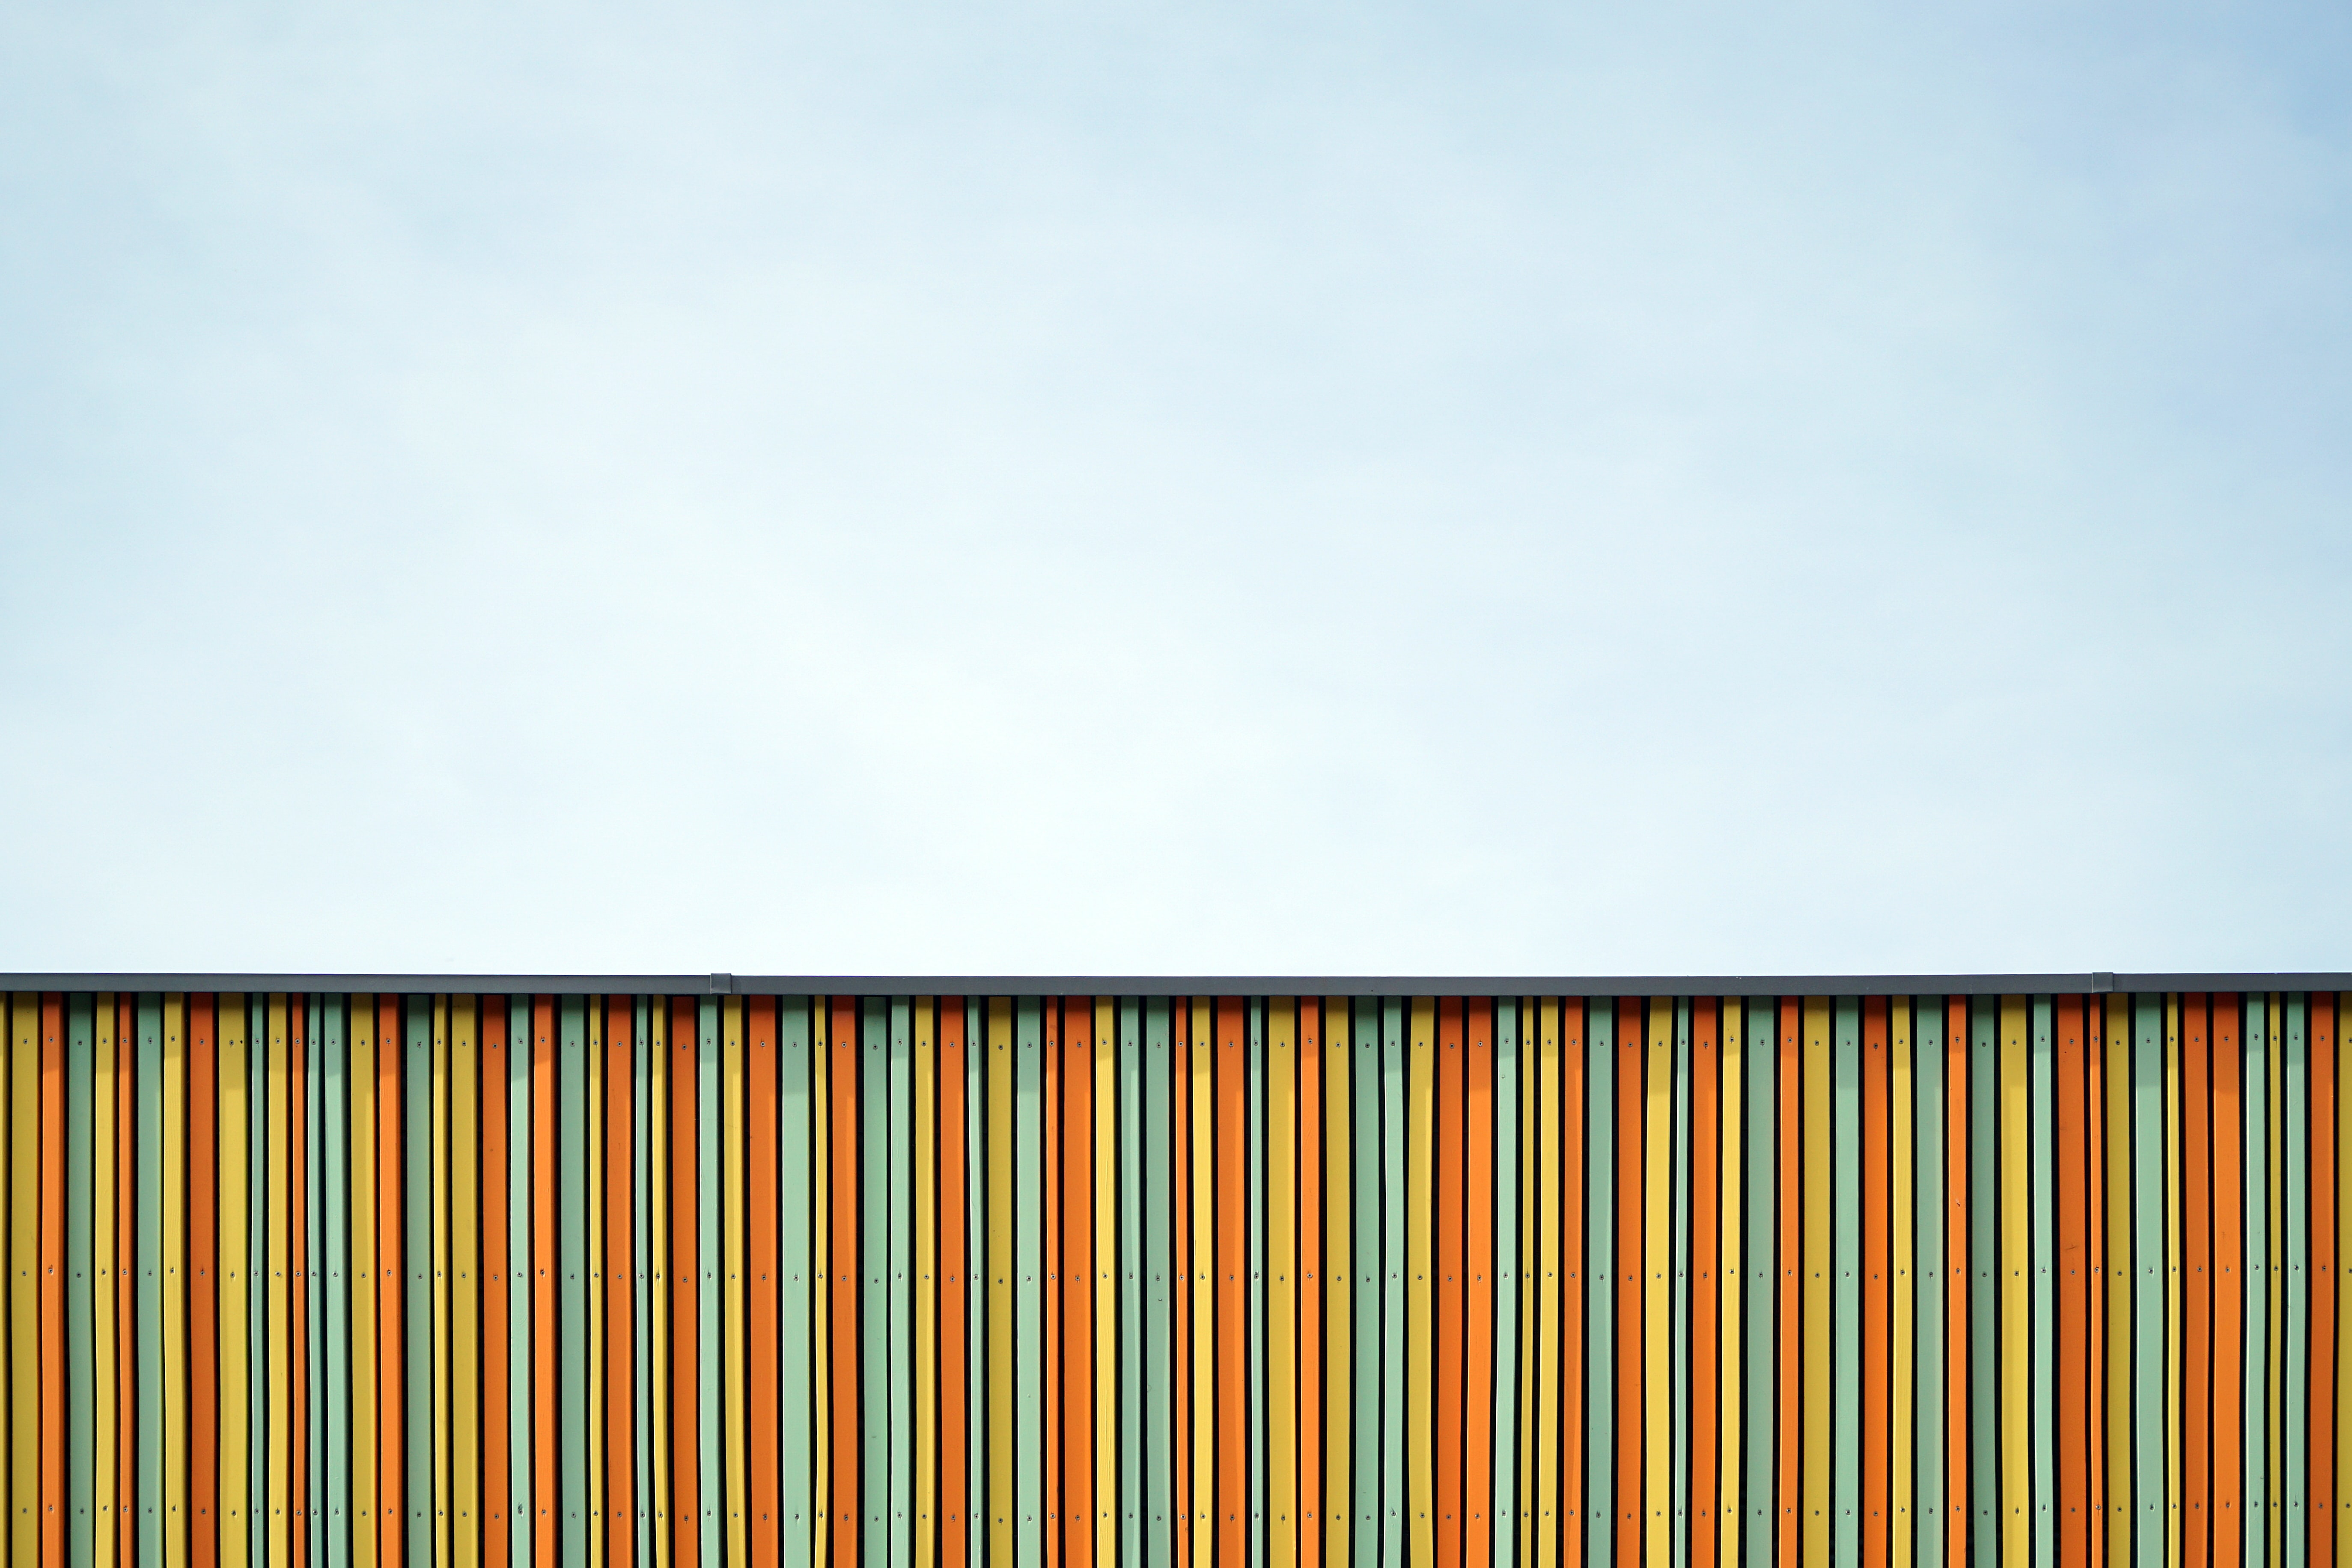 yellow, orange, and blue wooden fence